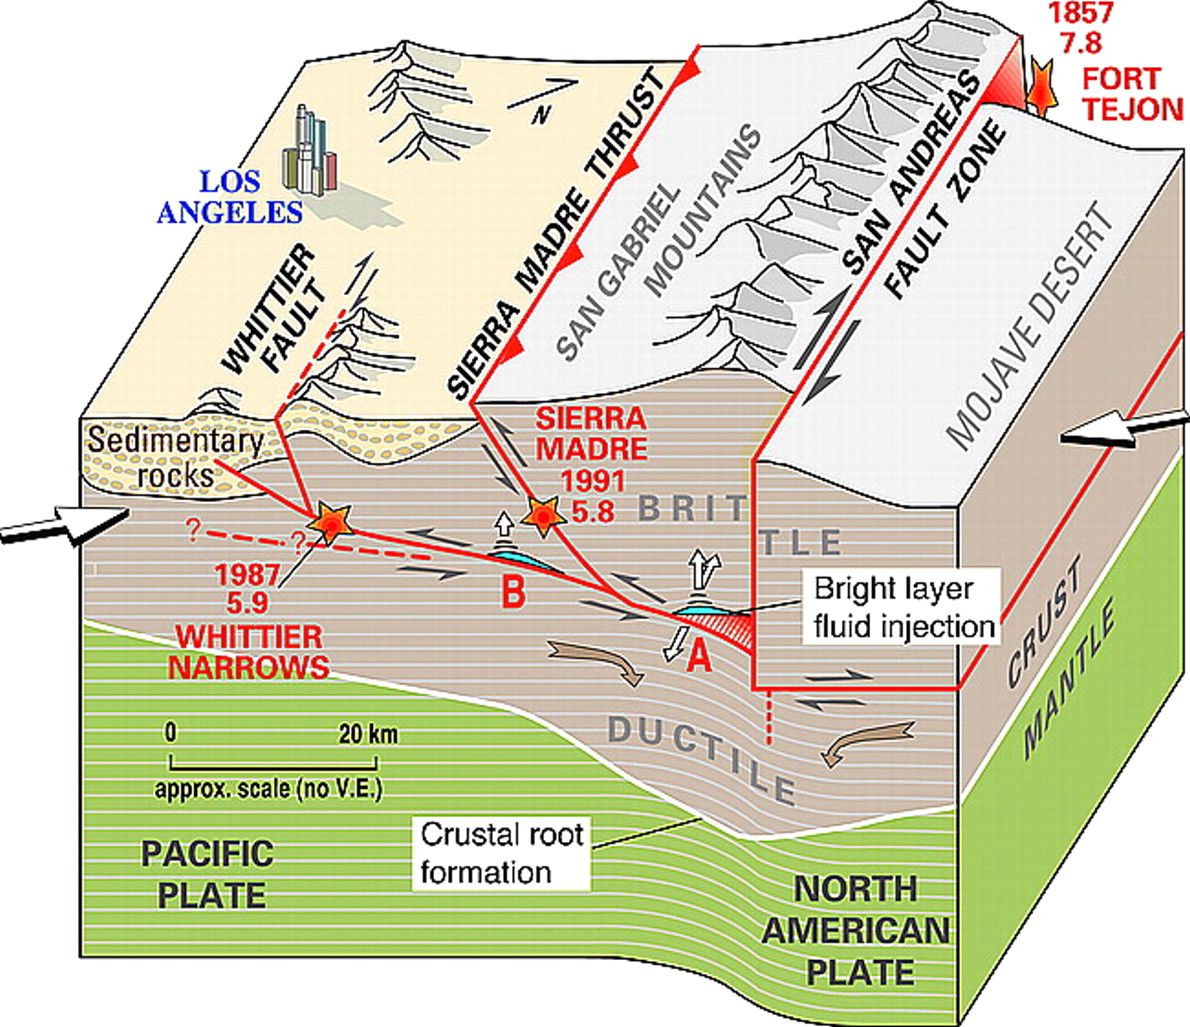 physical geology or landforms earthquake fault san andreas fault stem science earth science [ 1190 x 1027 Pixel ]